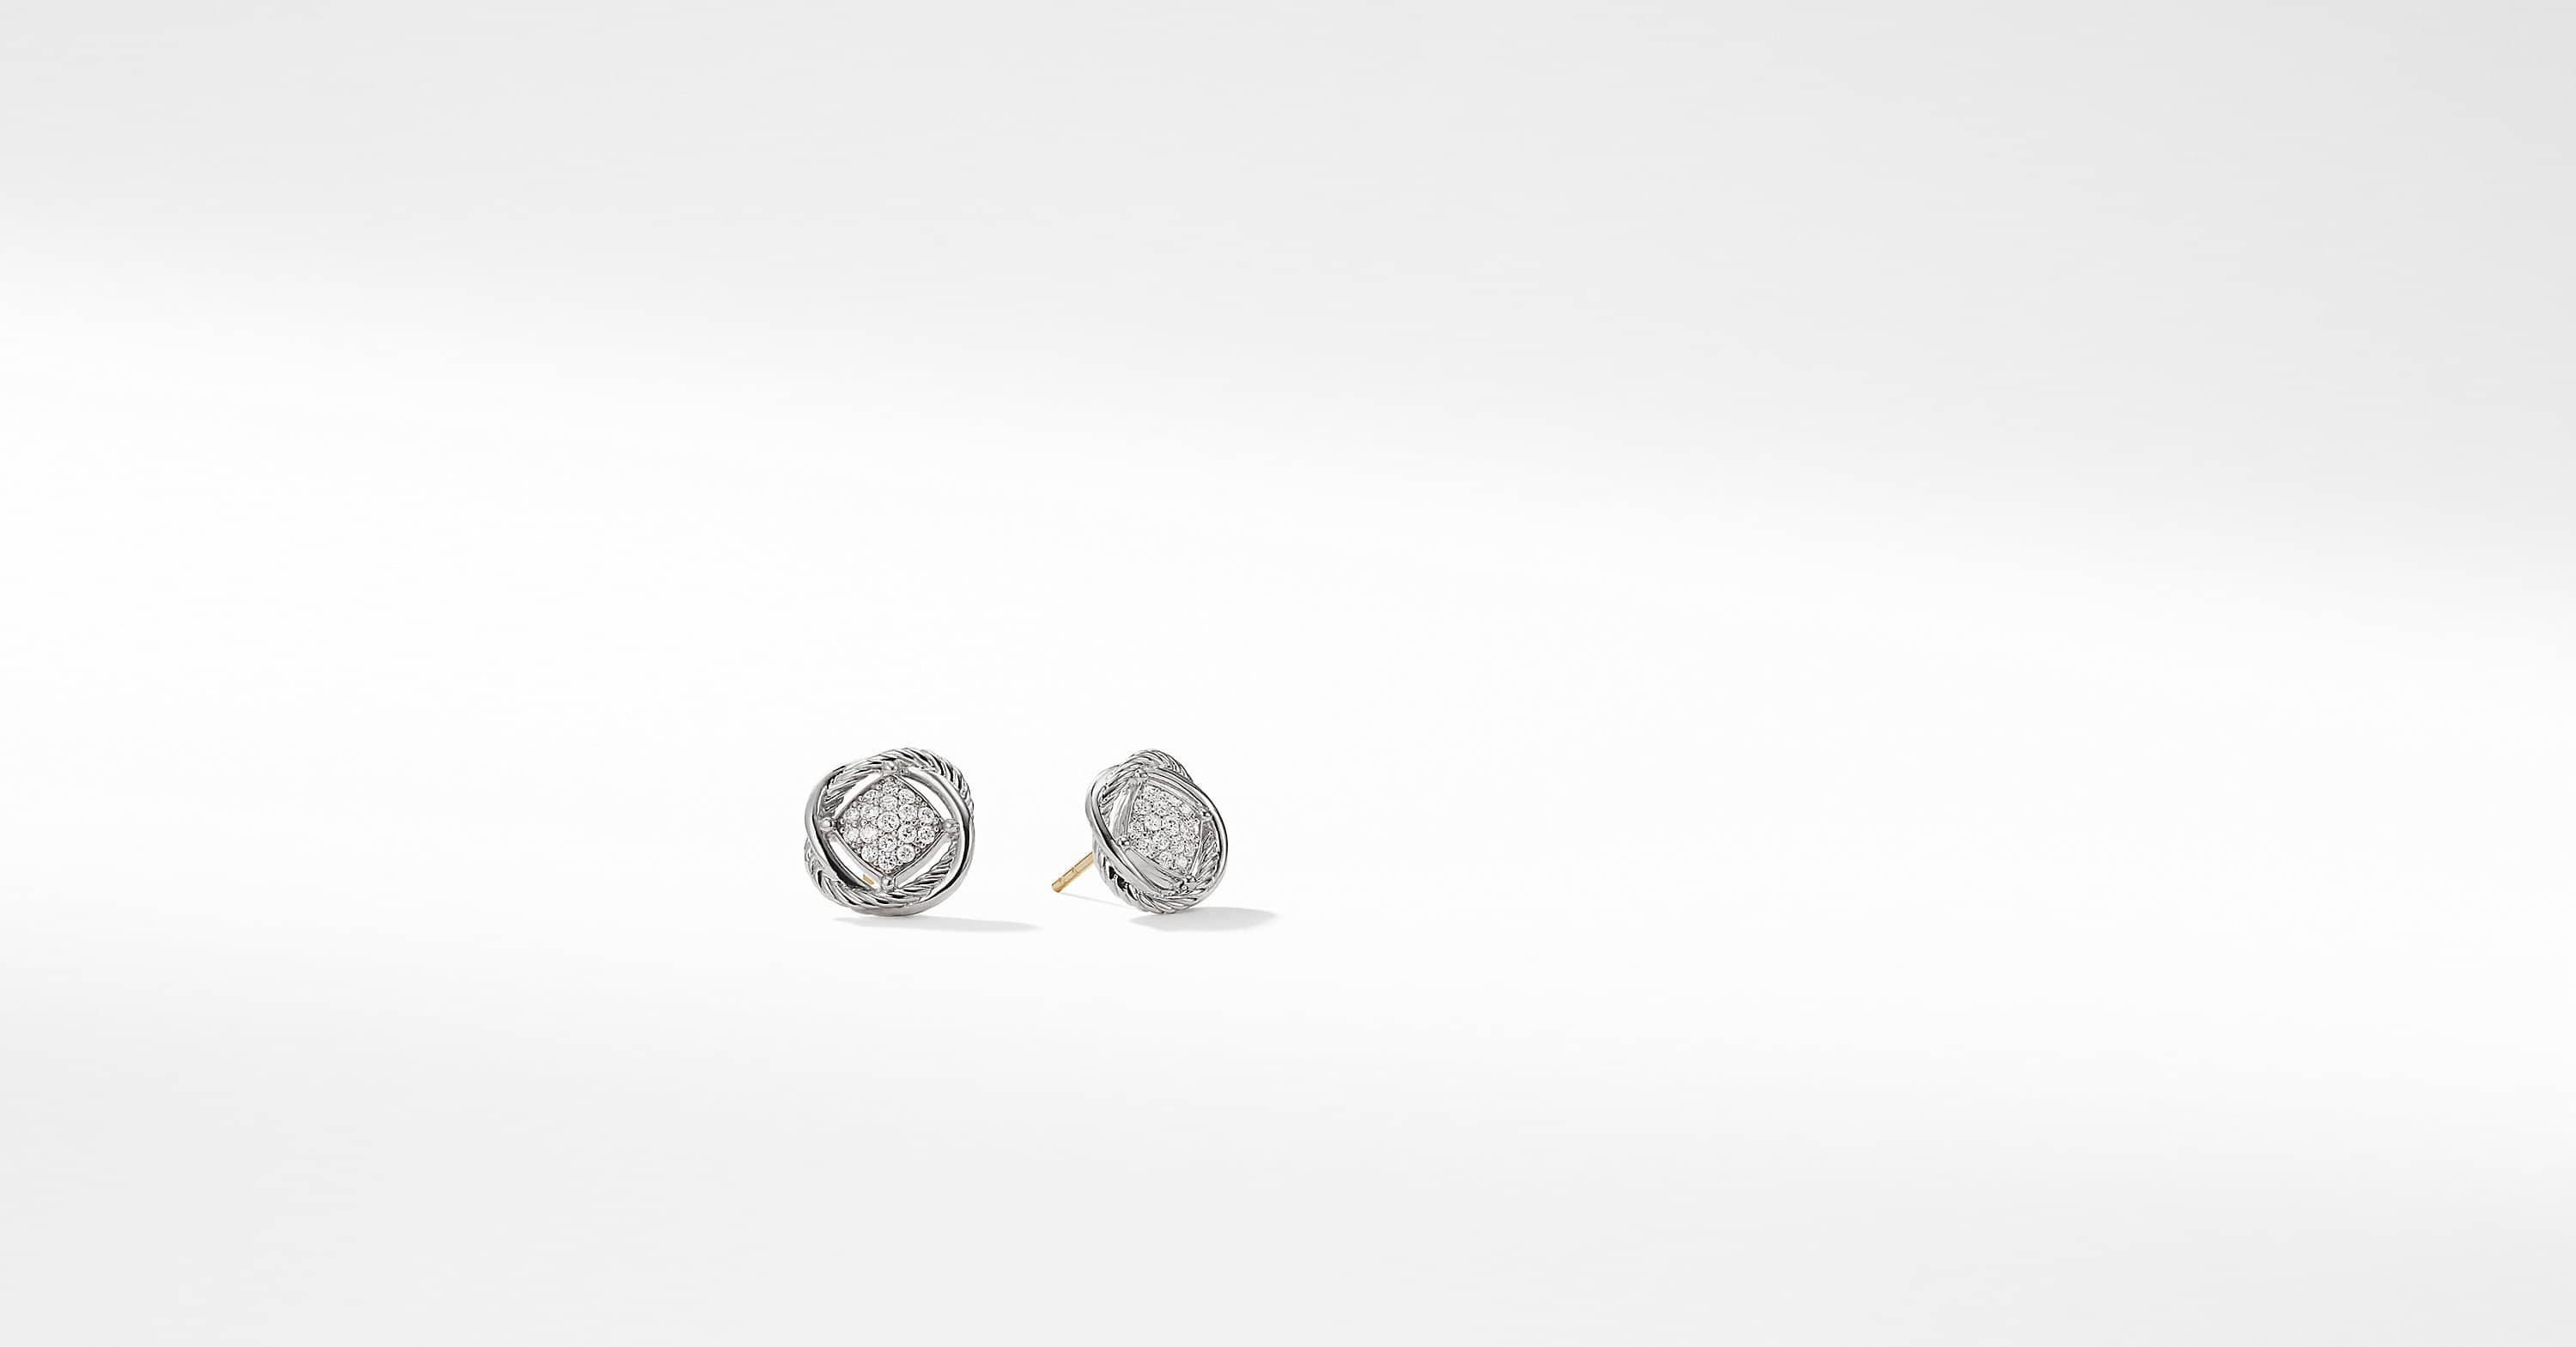 Boucles d'oreilles avec diamants The Crossover Collection